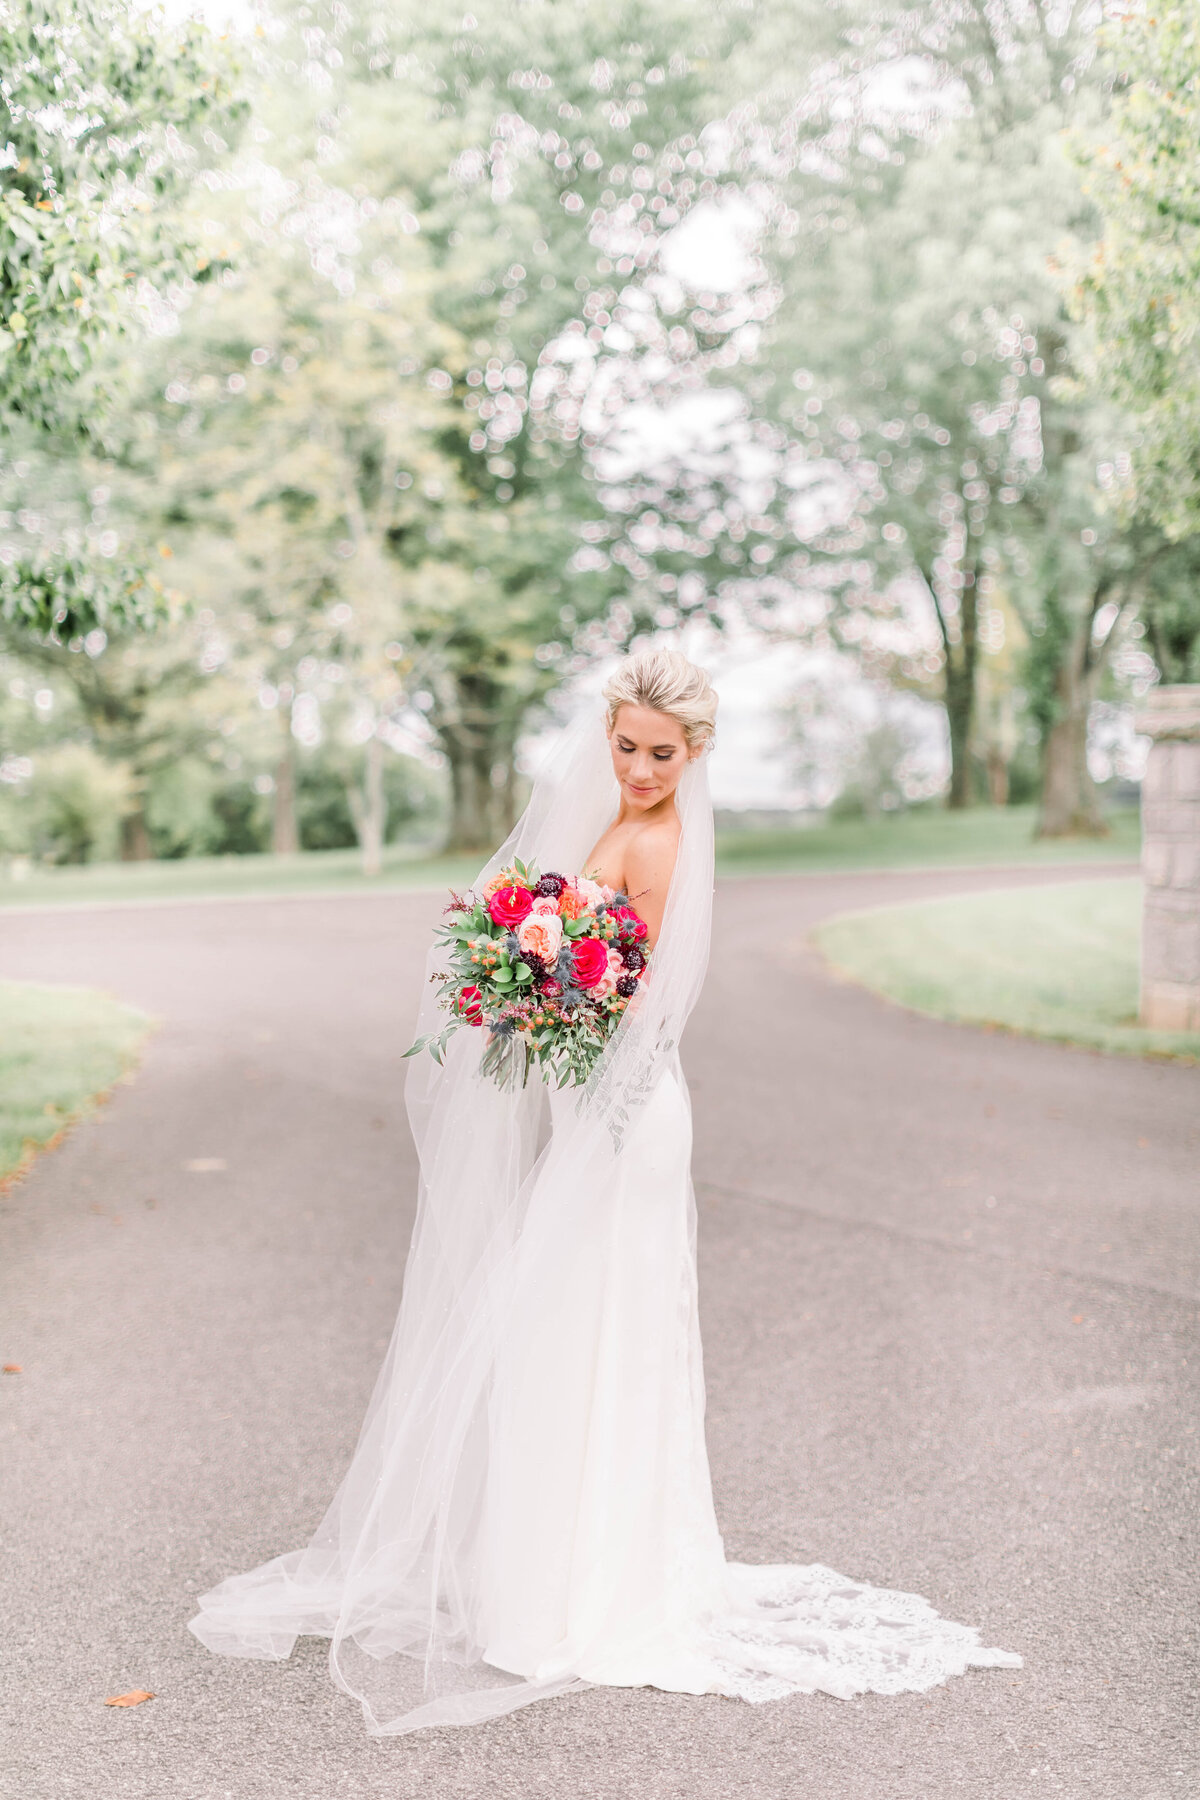 Light and airy photography by Paige Michelle Photography at Southern Kentucky venue, Ironwood Farms in Bowling Green, KY